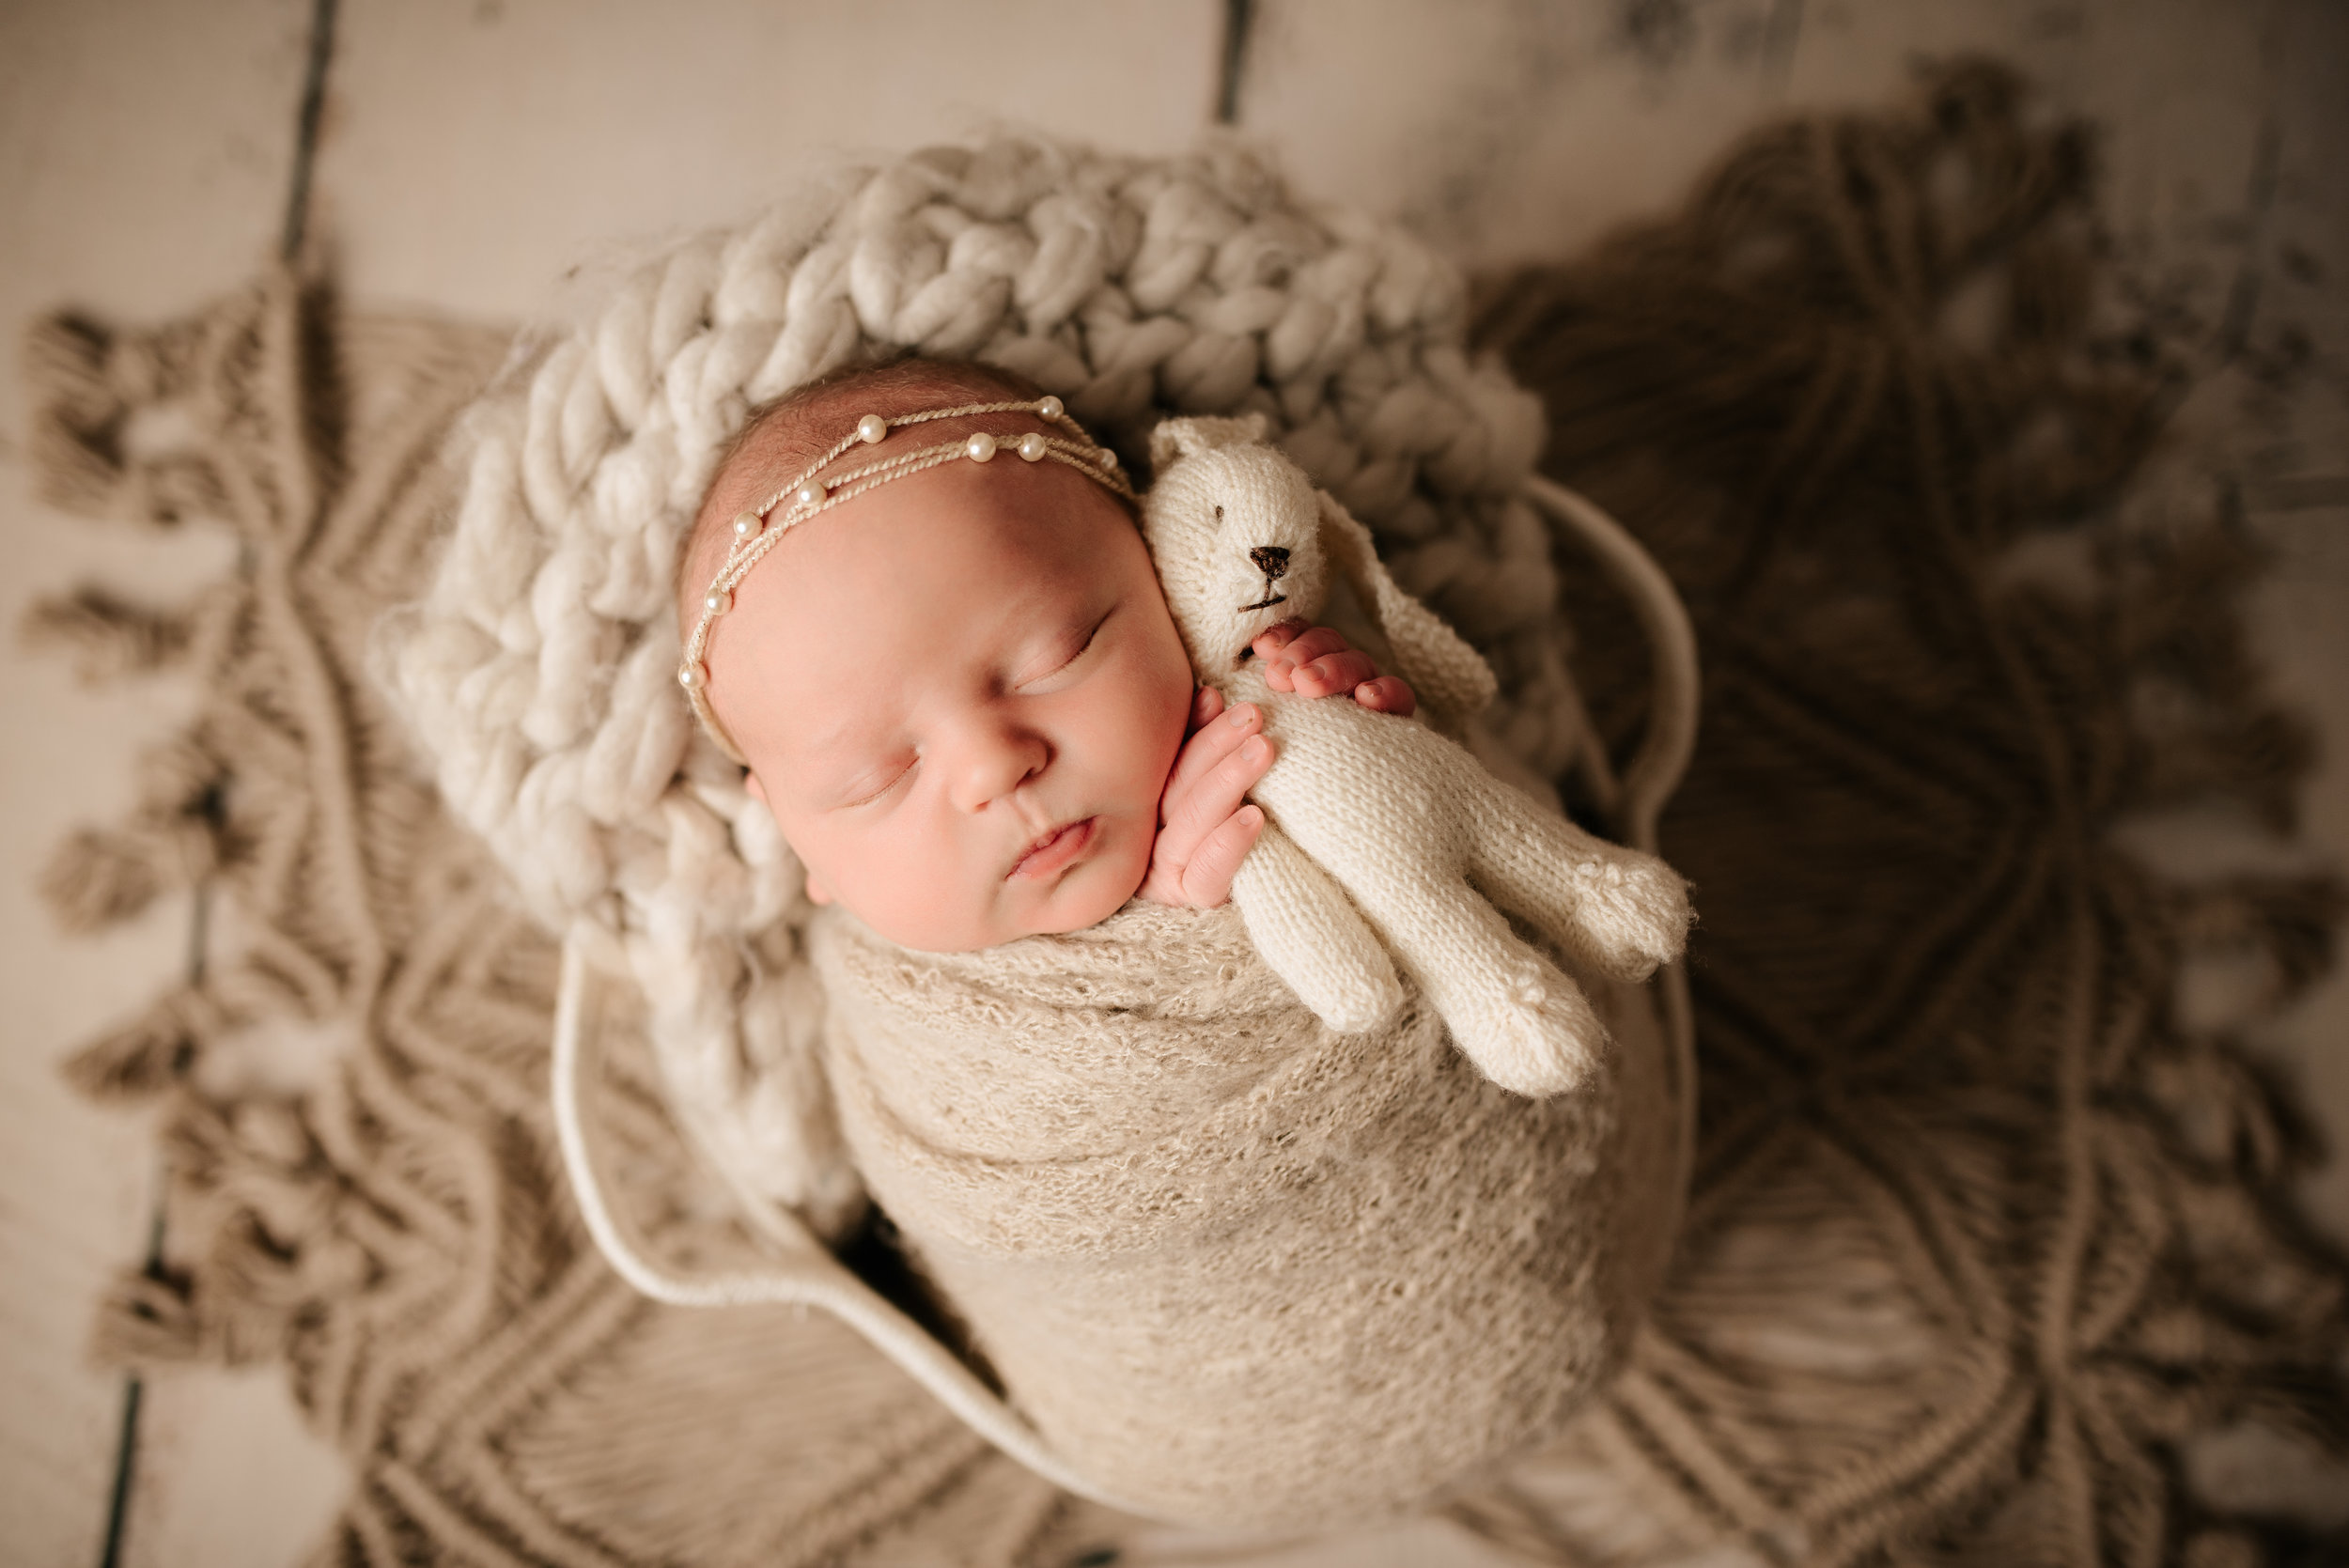 Newborn_Alannah_8Days-5.jpg